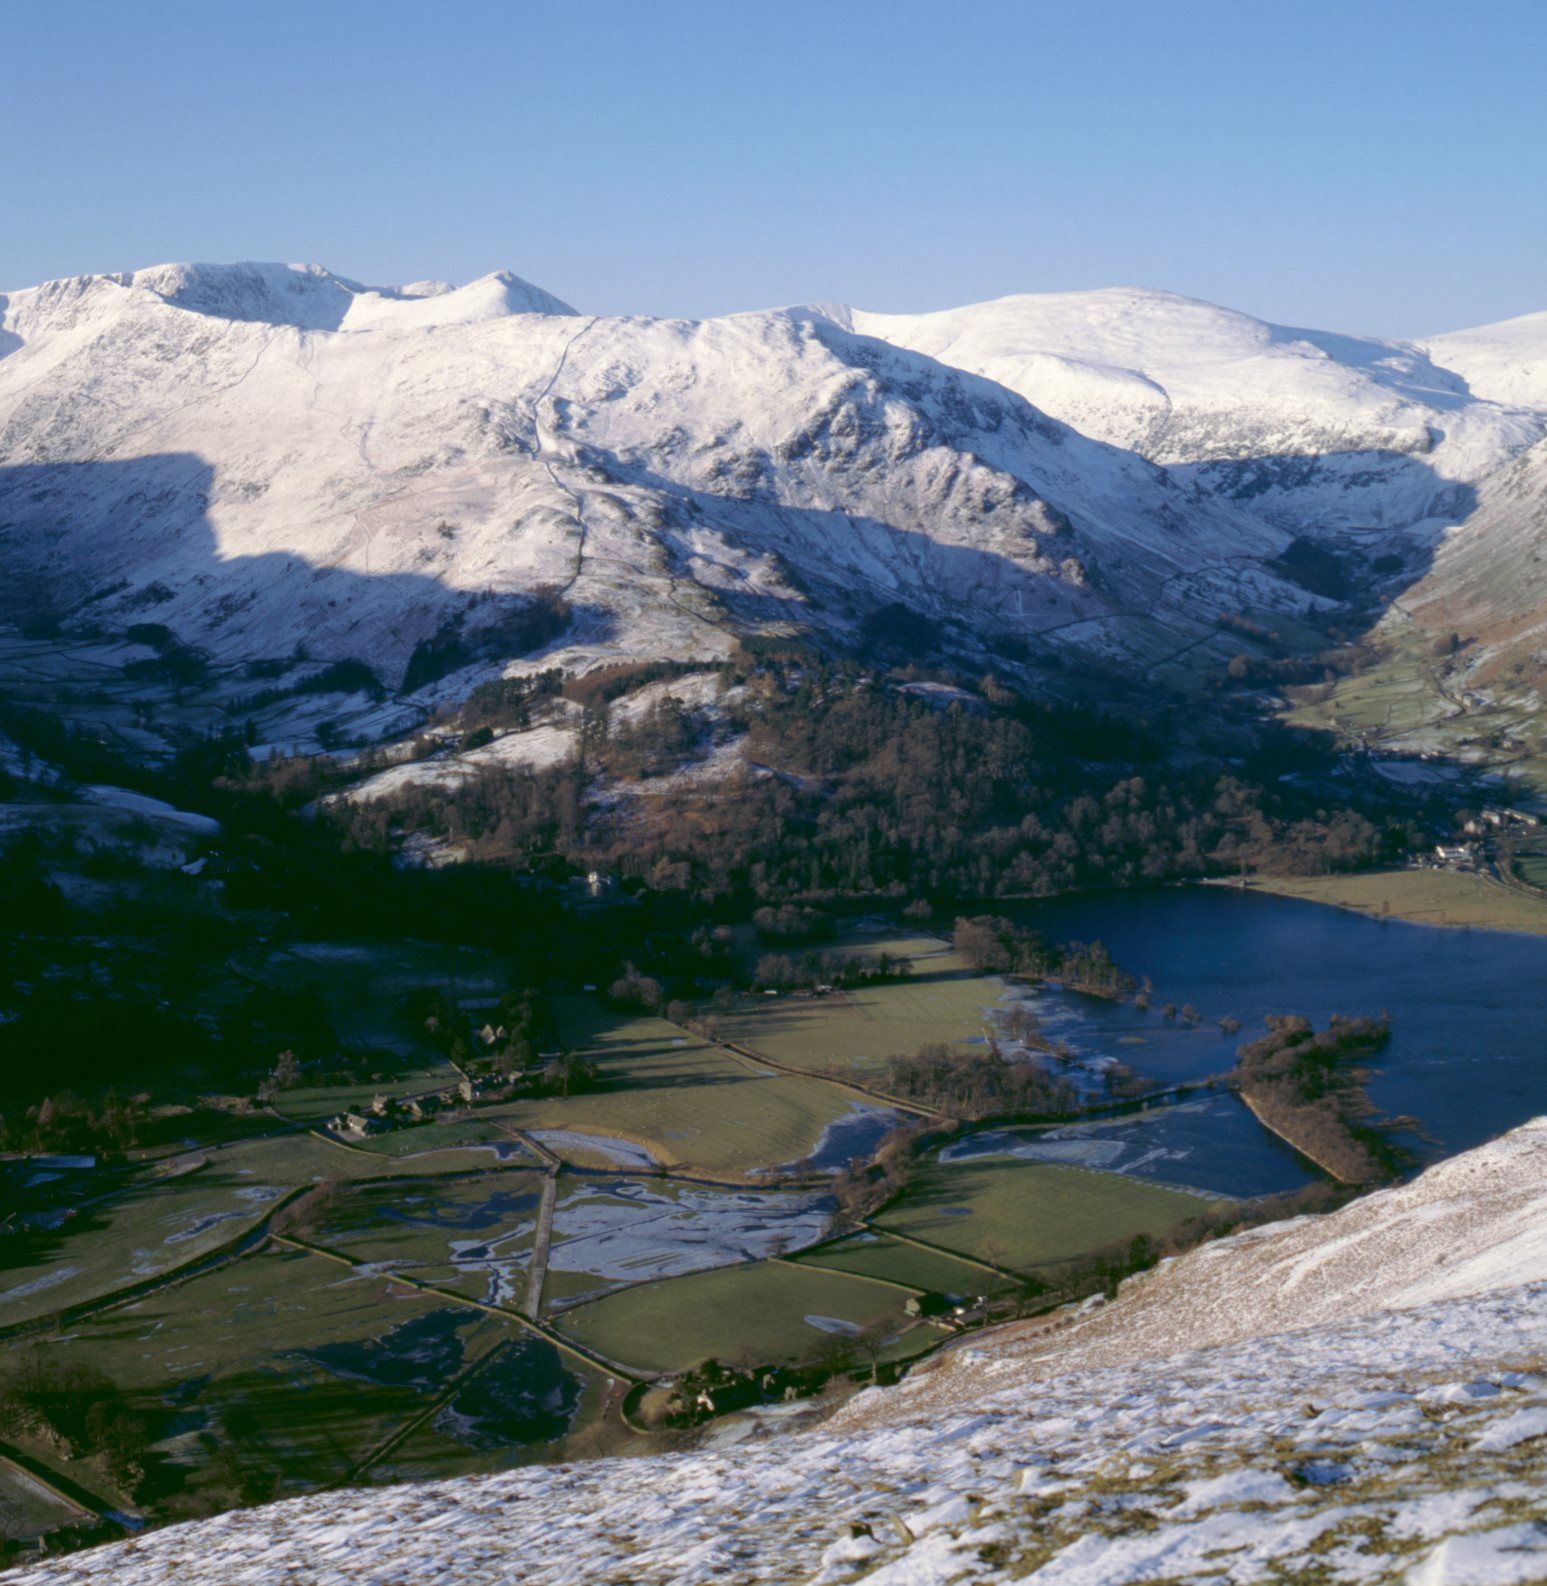 Patterdale and Glenridding.  Our house is near the bottom of the picture.